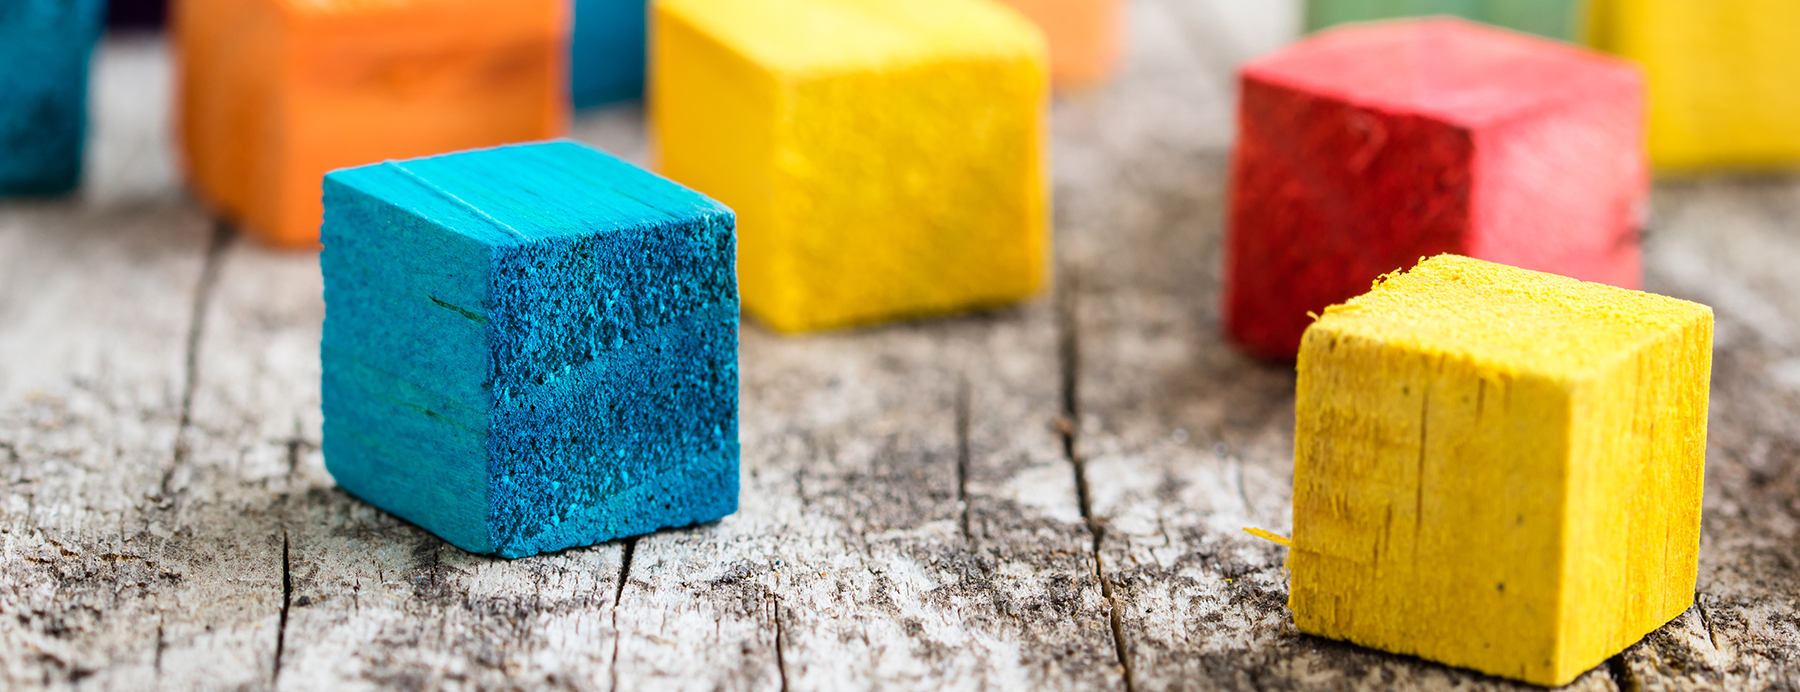 Colored blocks on a wood surface